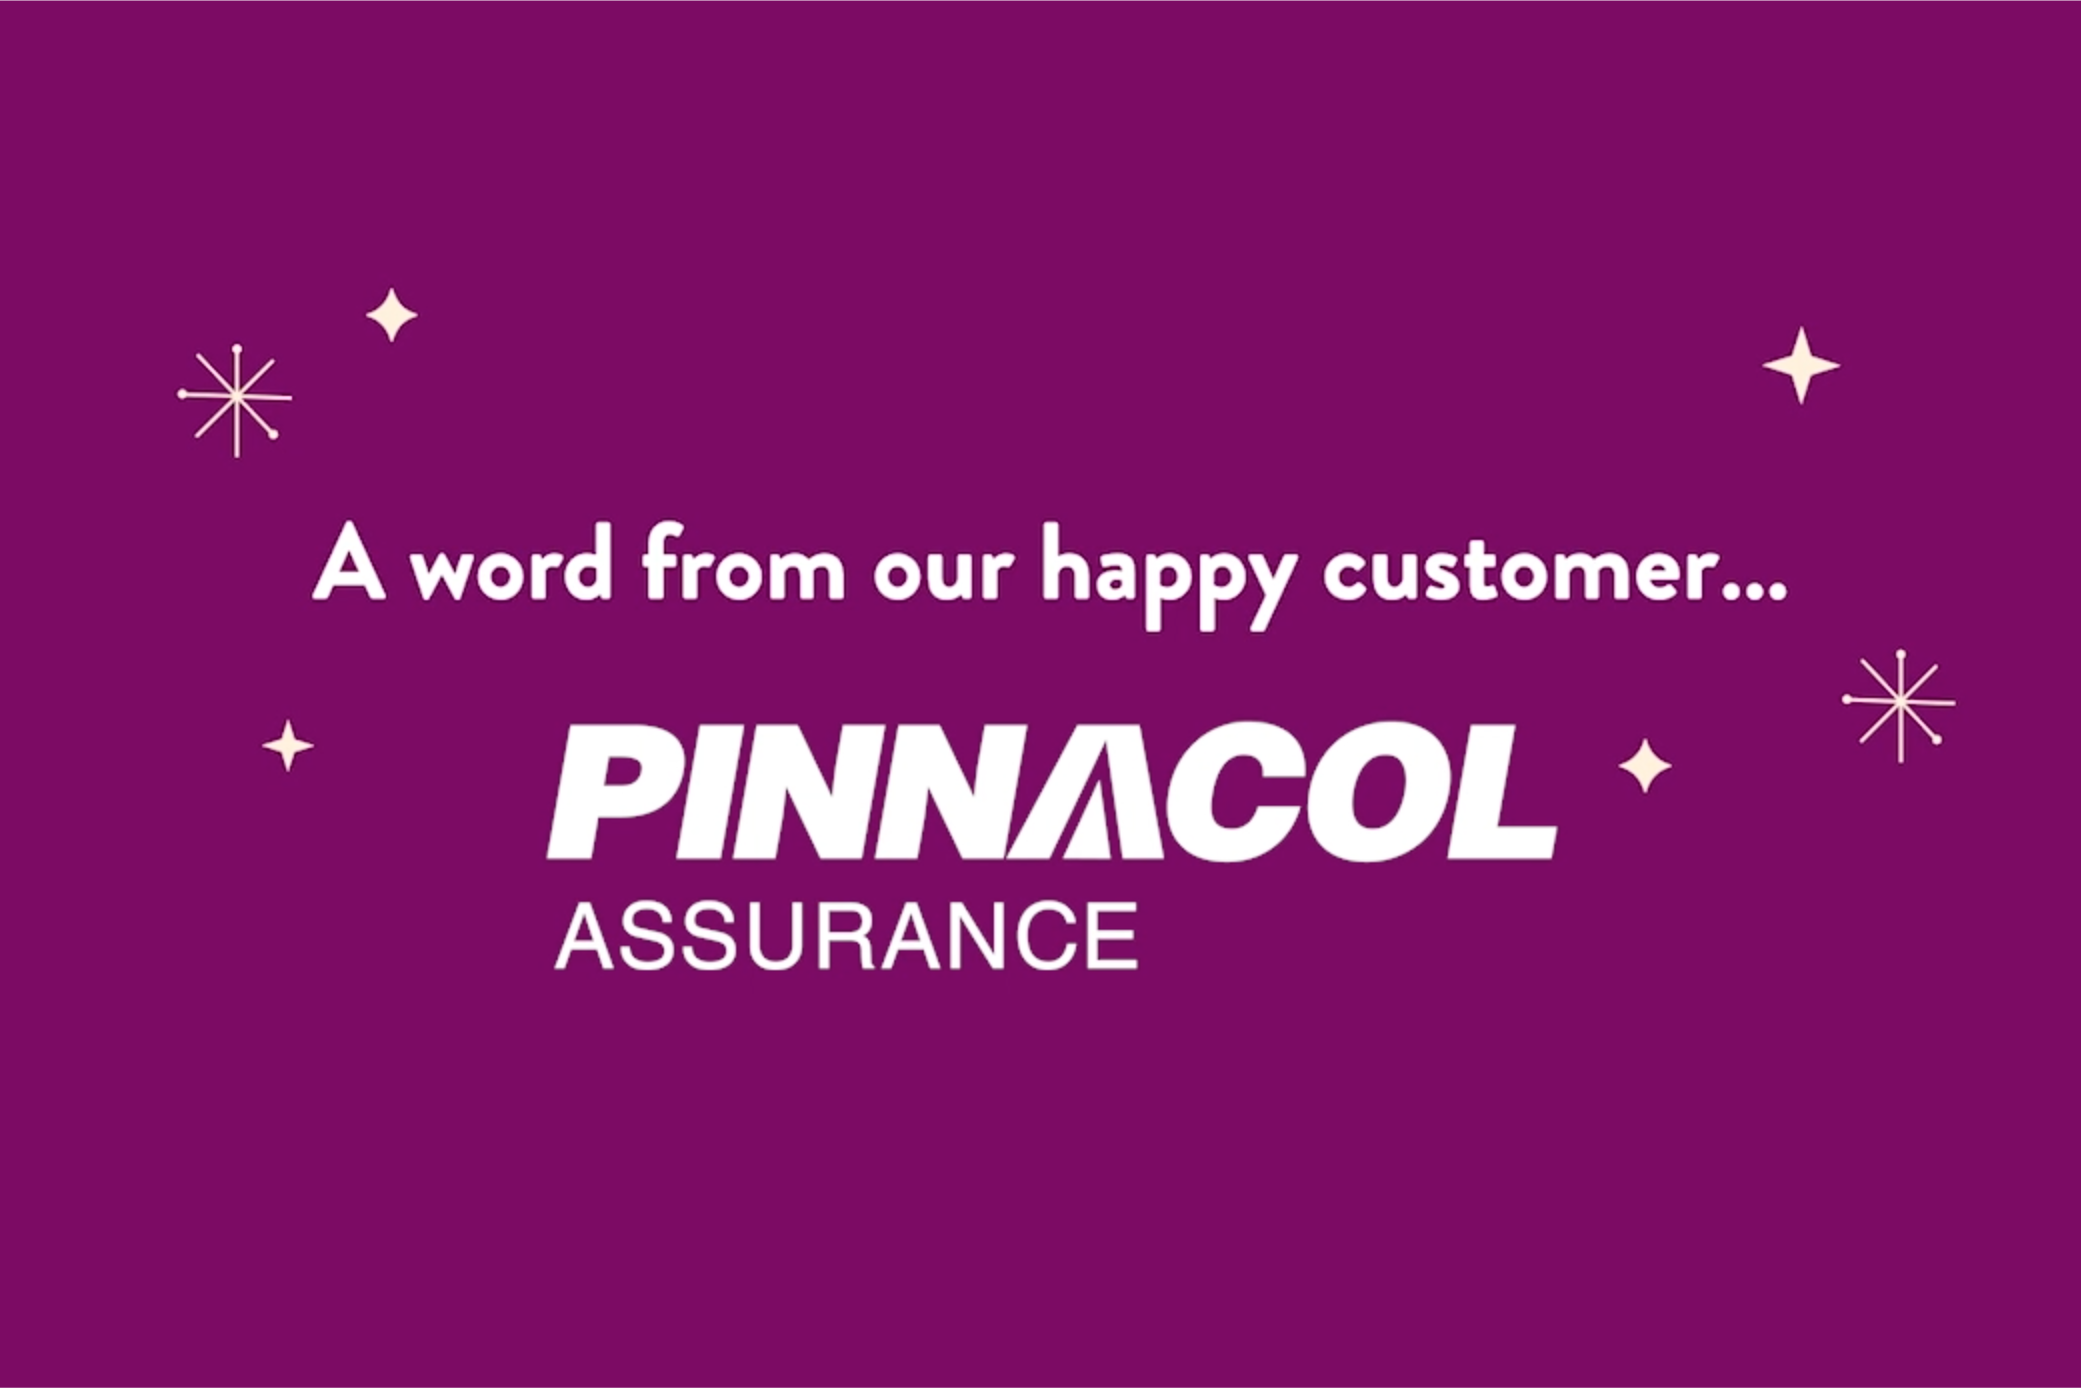 Pinnacol Assurance Case Study